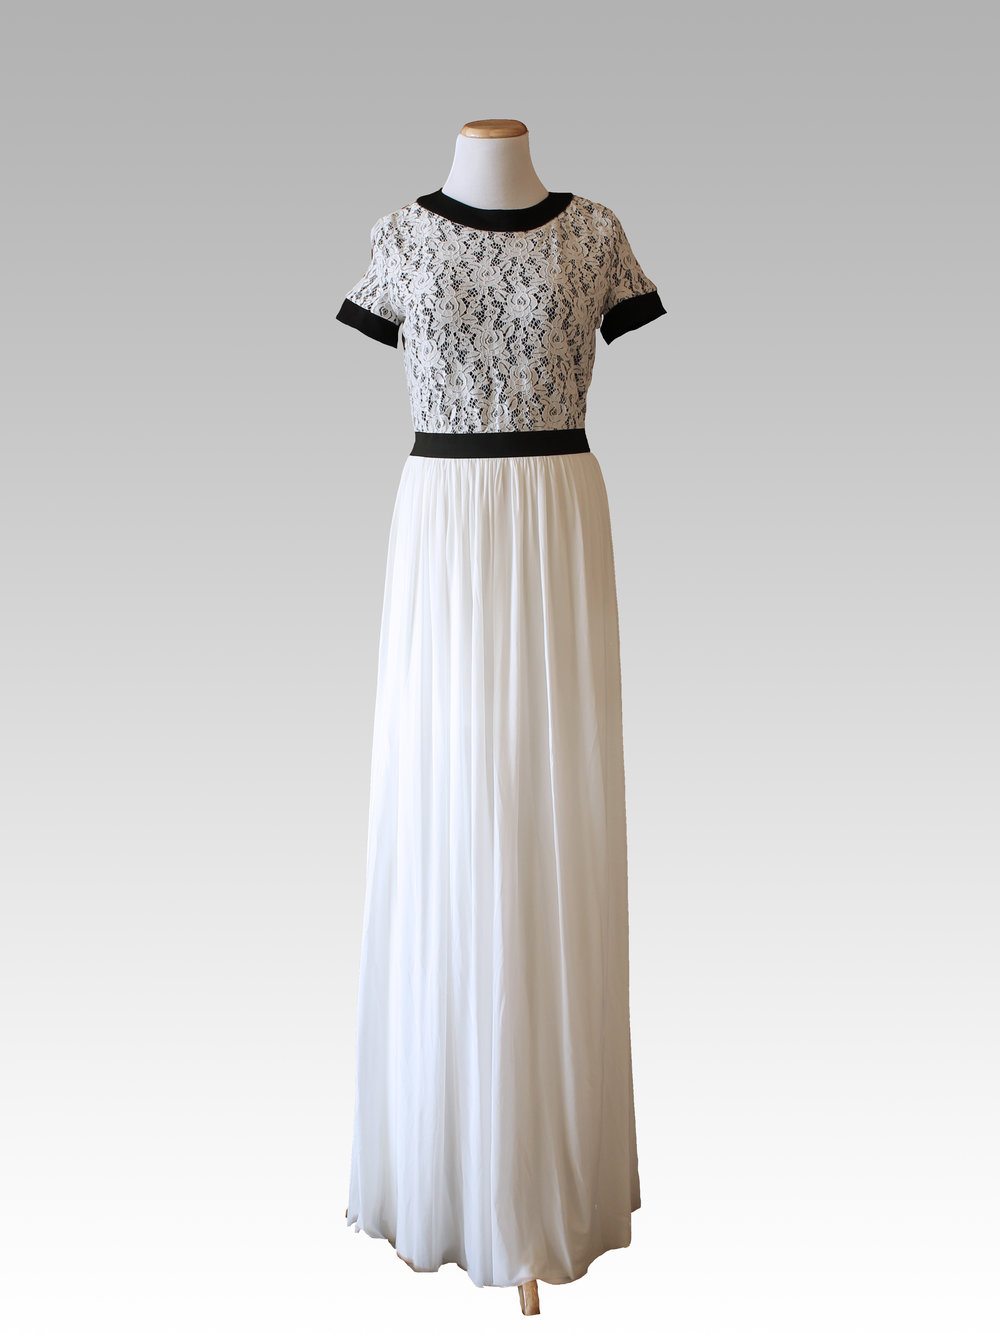 white-dress-black-hems-front.jpg